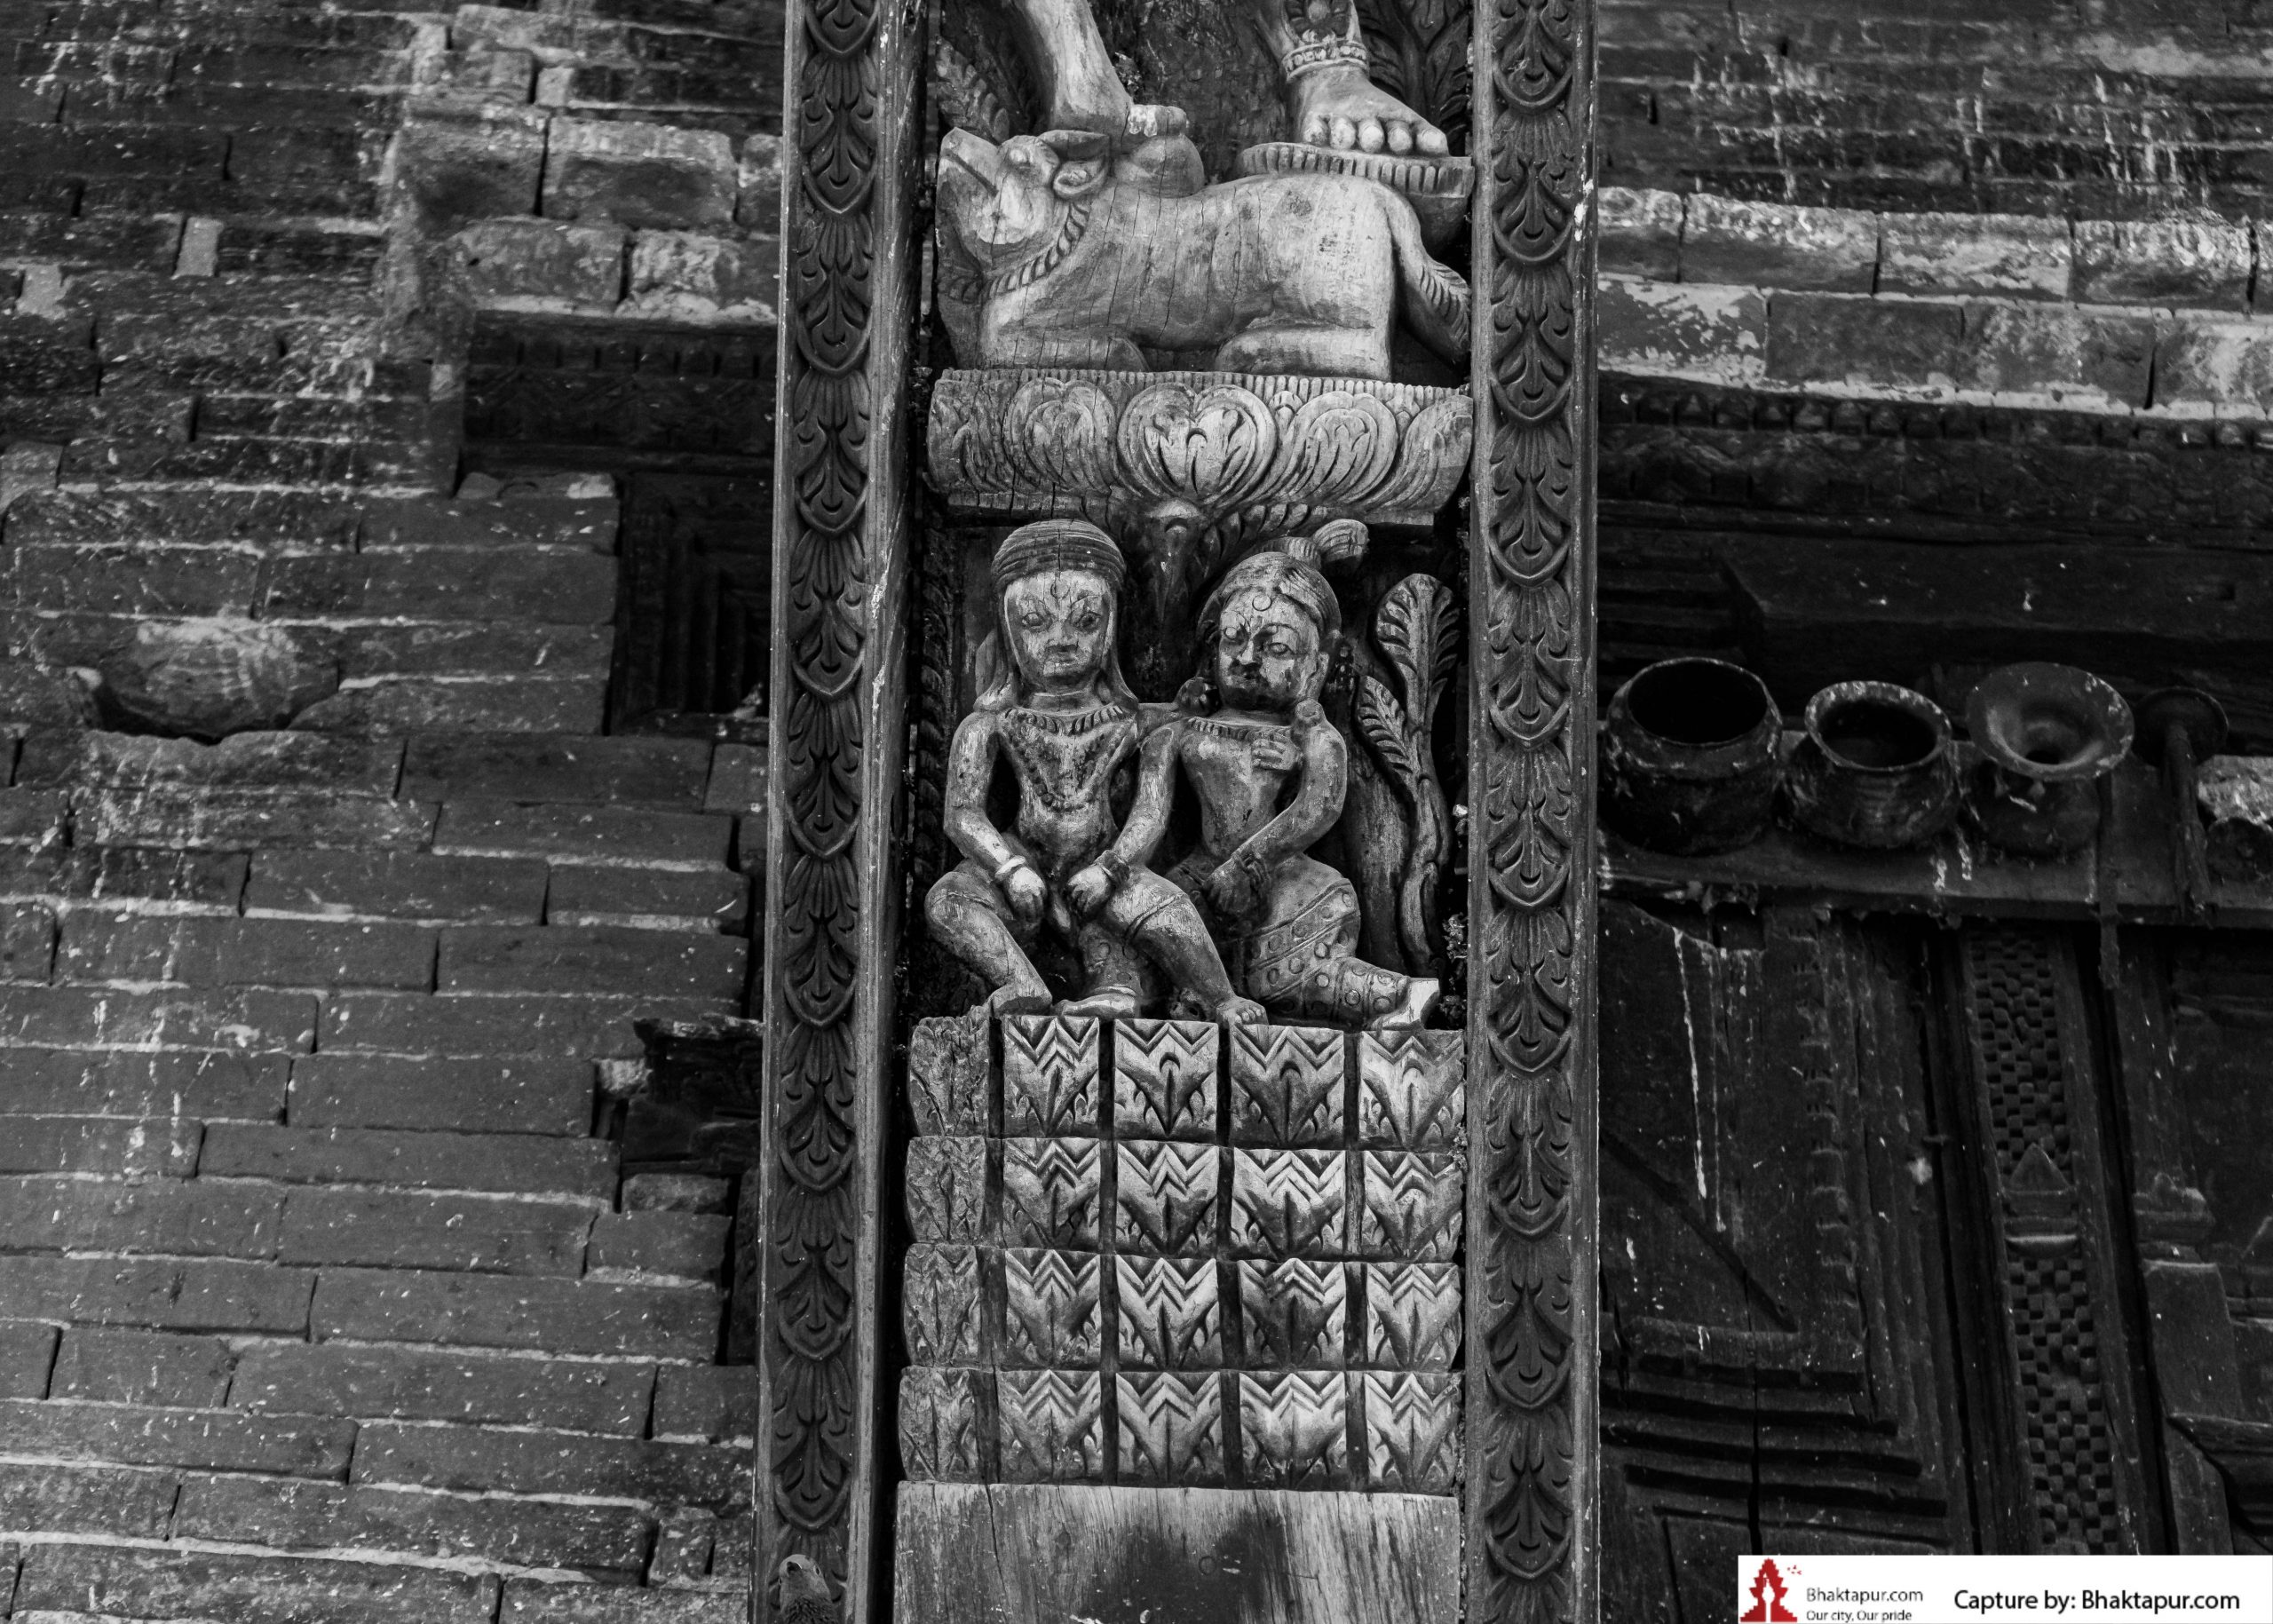 https://www.bhaktapur.com/wp-content/uploads/2021/08/erotic-carving-95-of-137-scaled.jpg